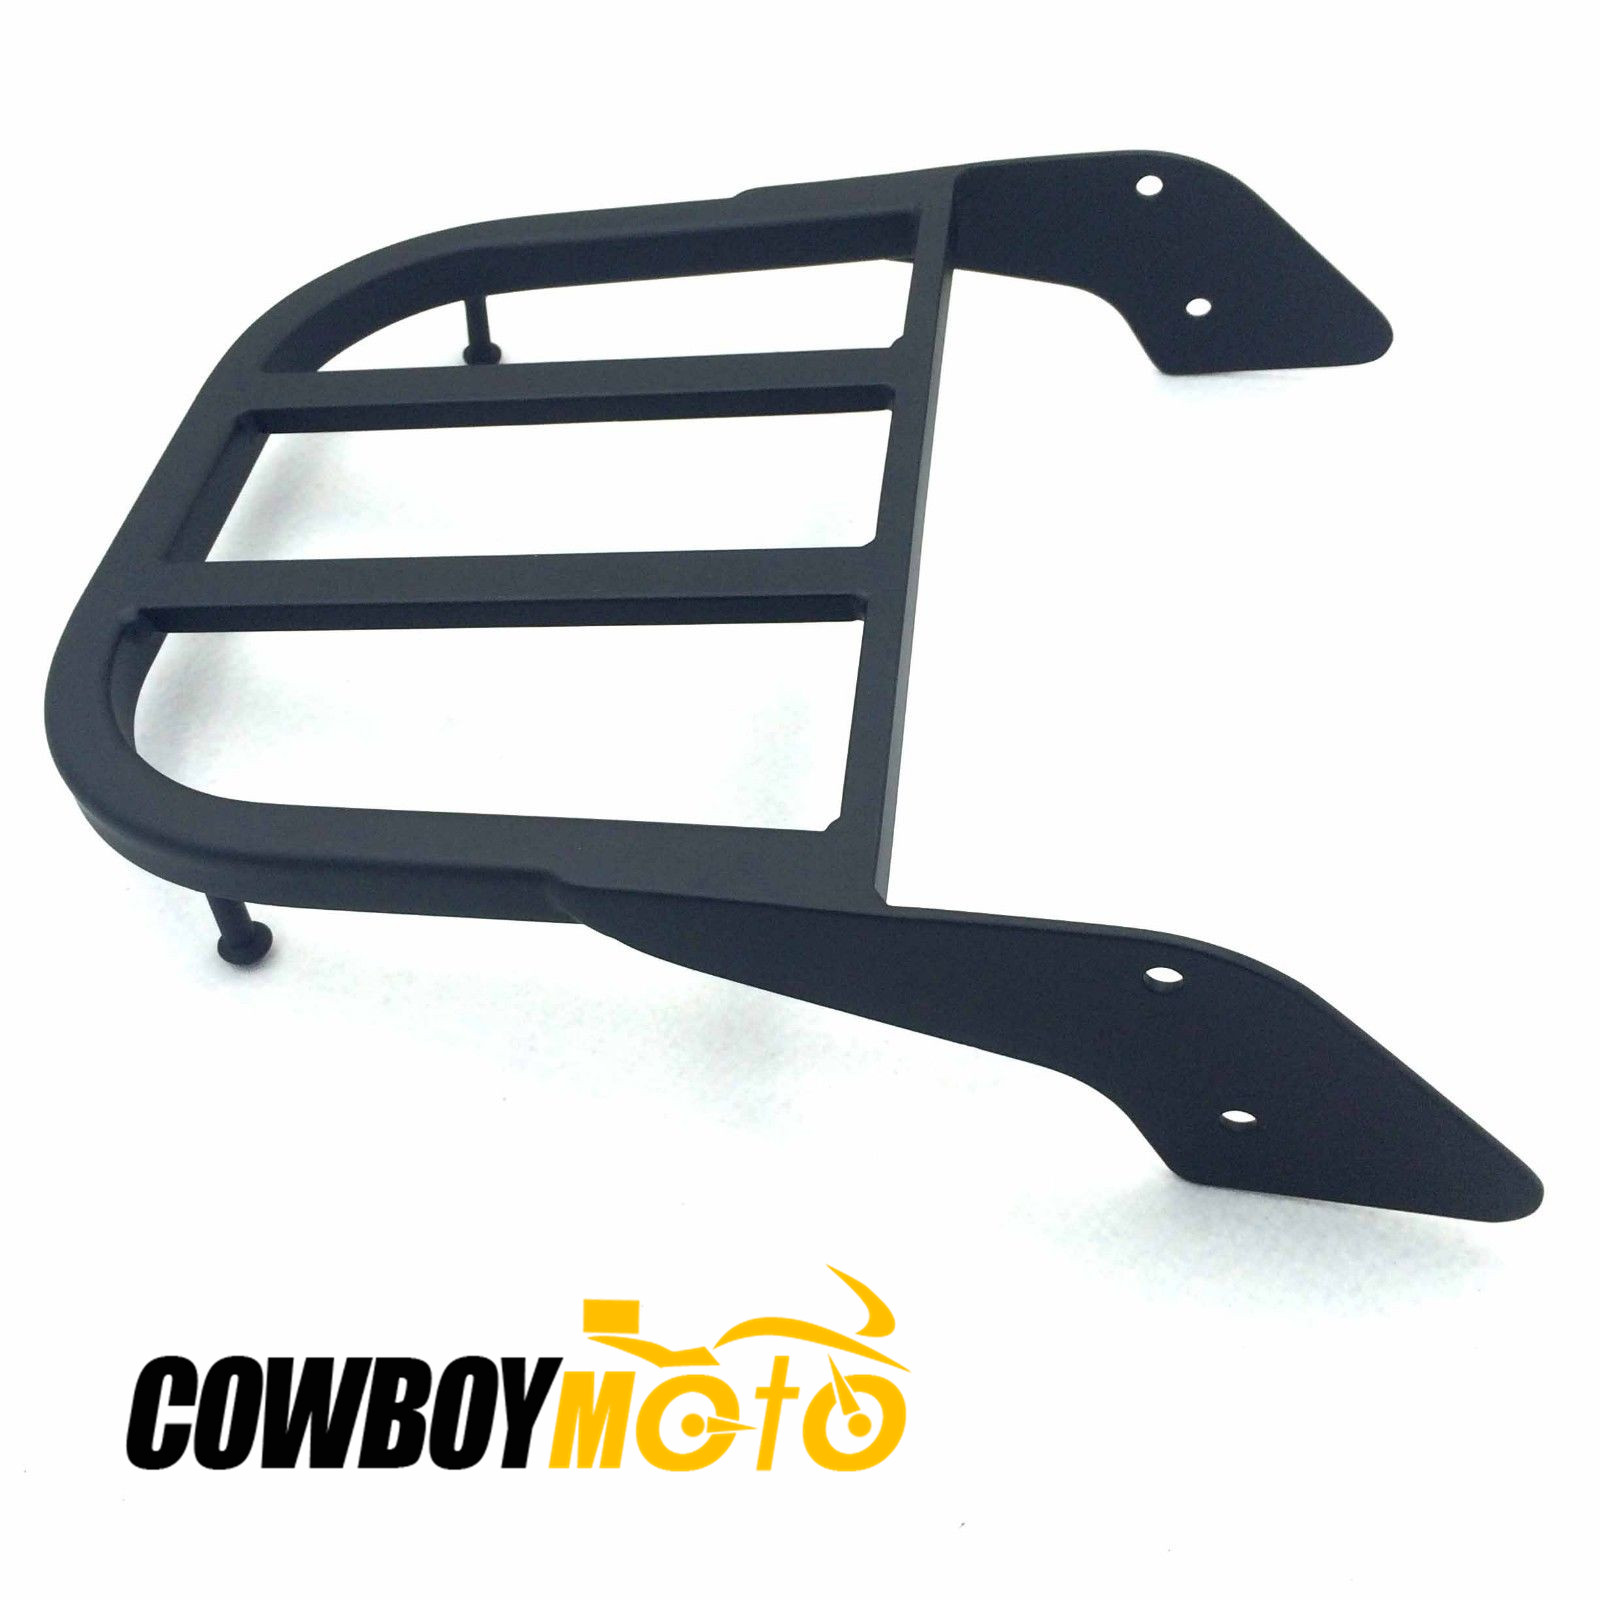 Motorcycle Black Sissy Bar Luggage Rack Carrier For Honda ACE 750 Spirit Aeri 1100 VLX 600 Sabre Magna Tourer